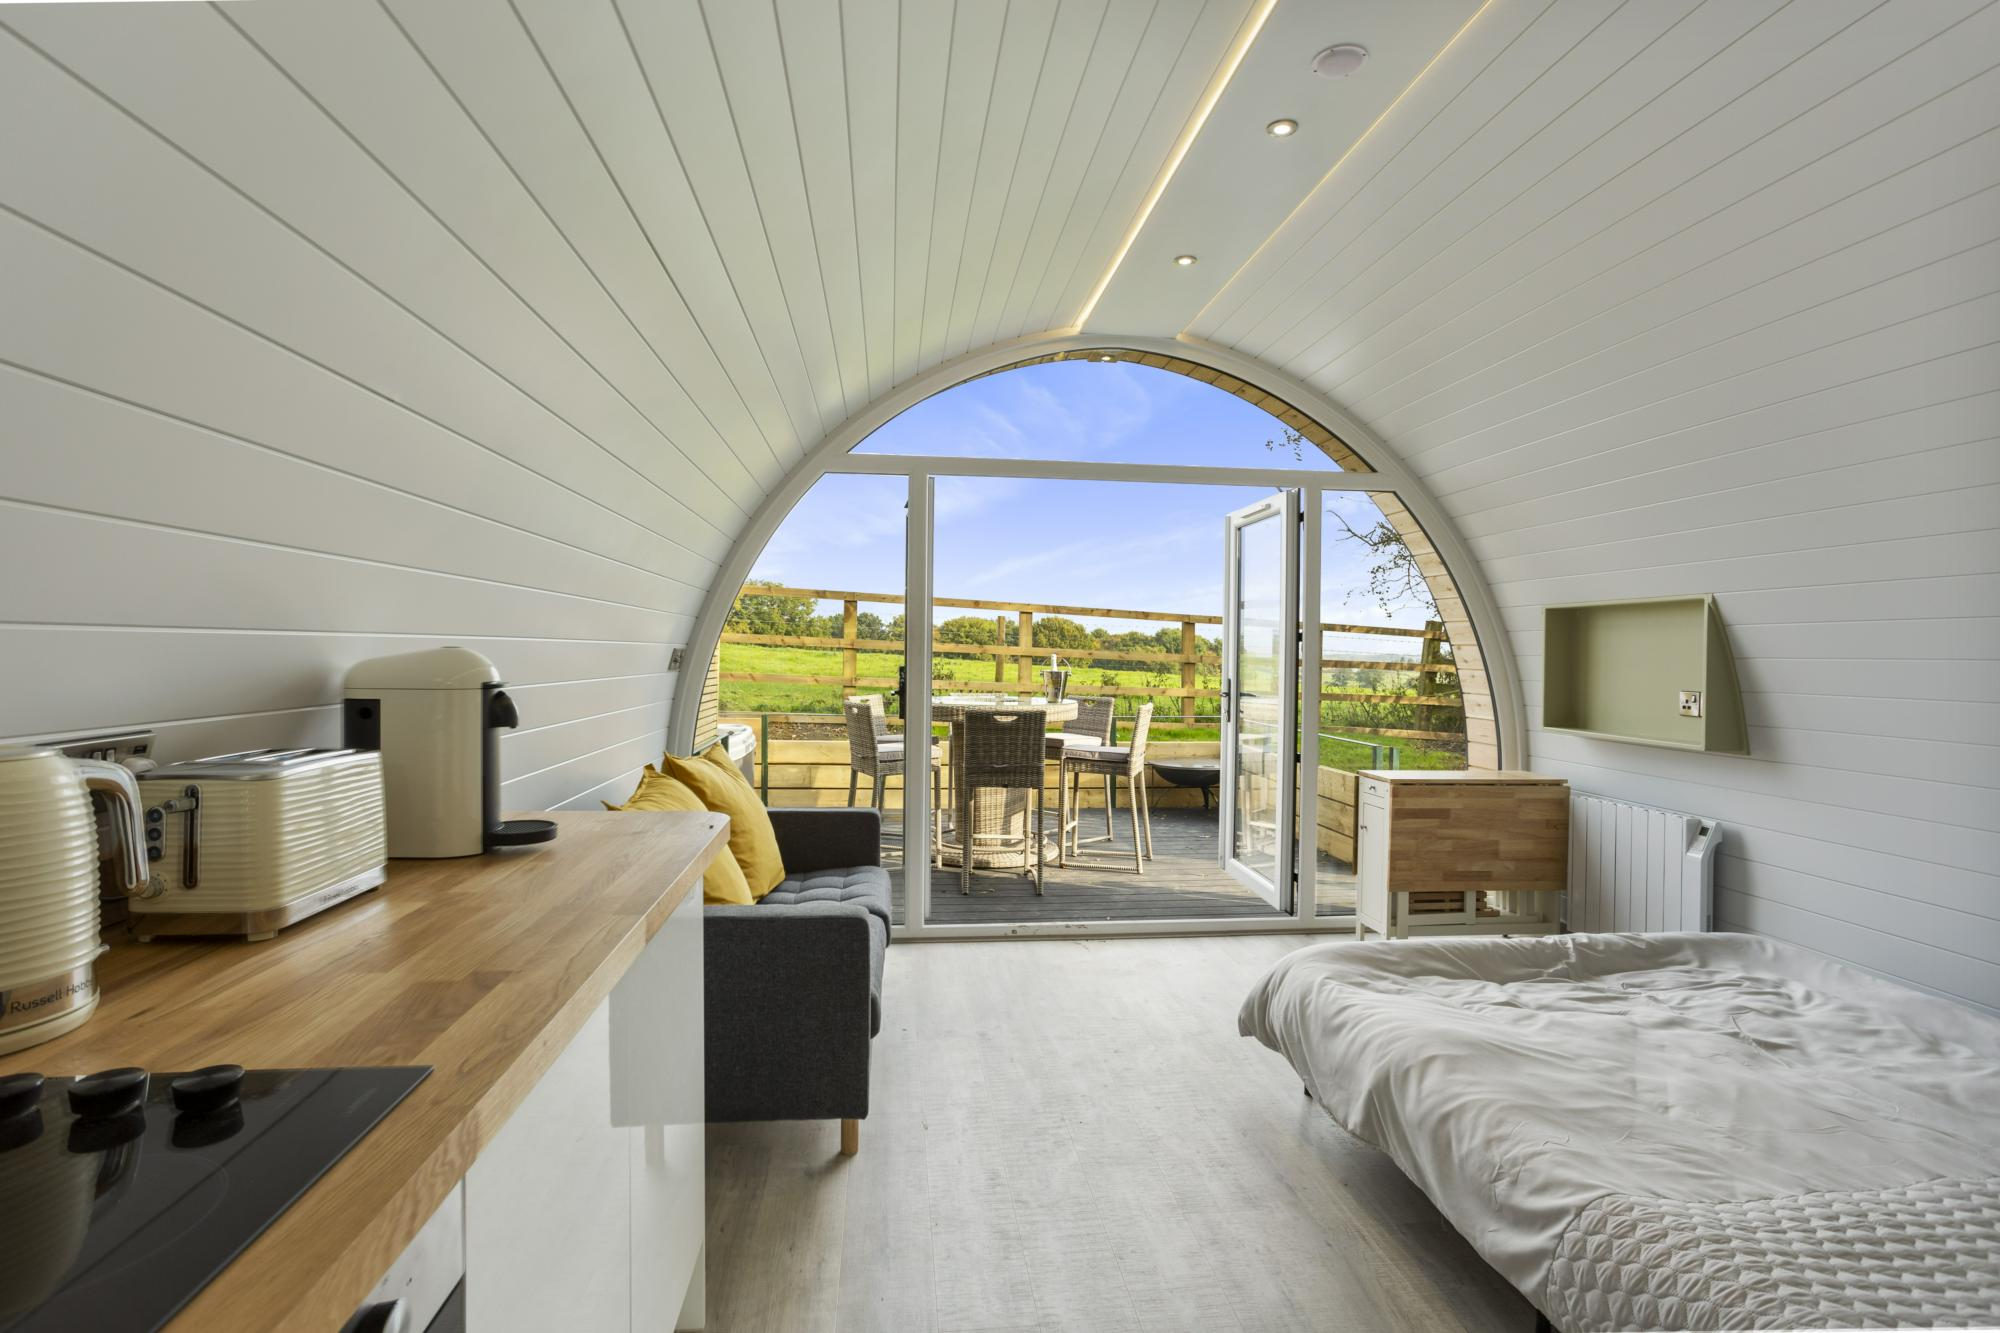 Places to Stay in Family-Friendly holidays at Cool Places